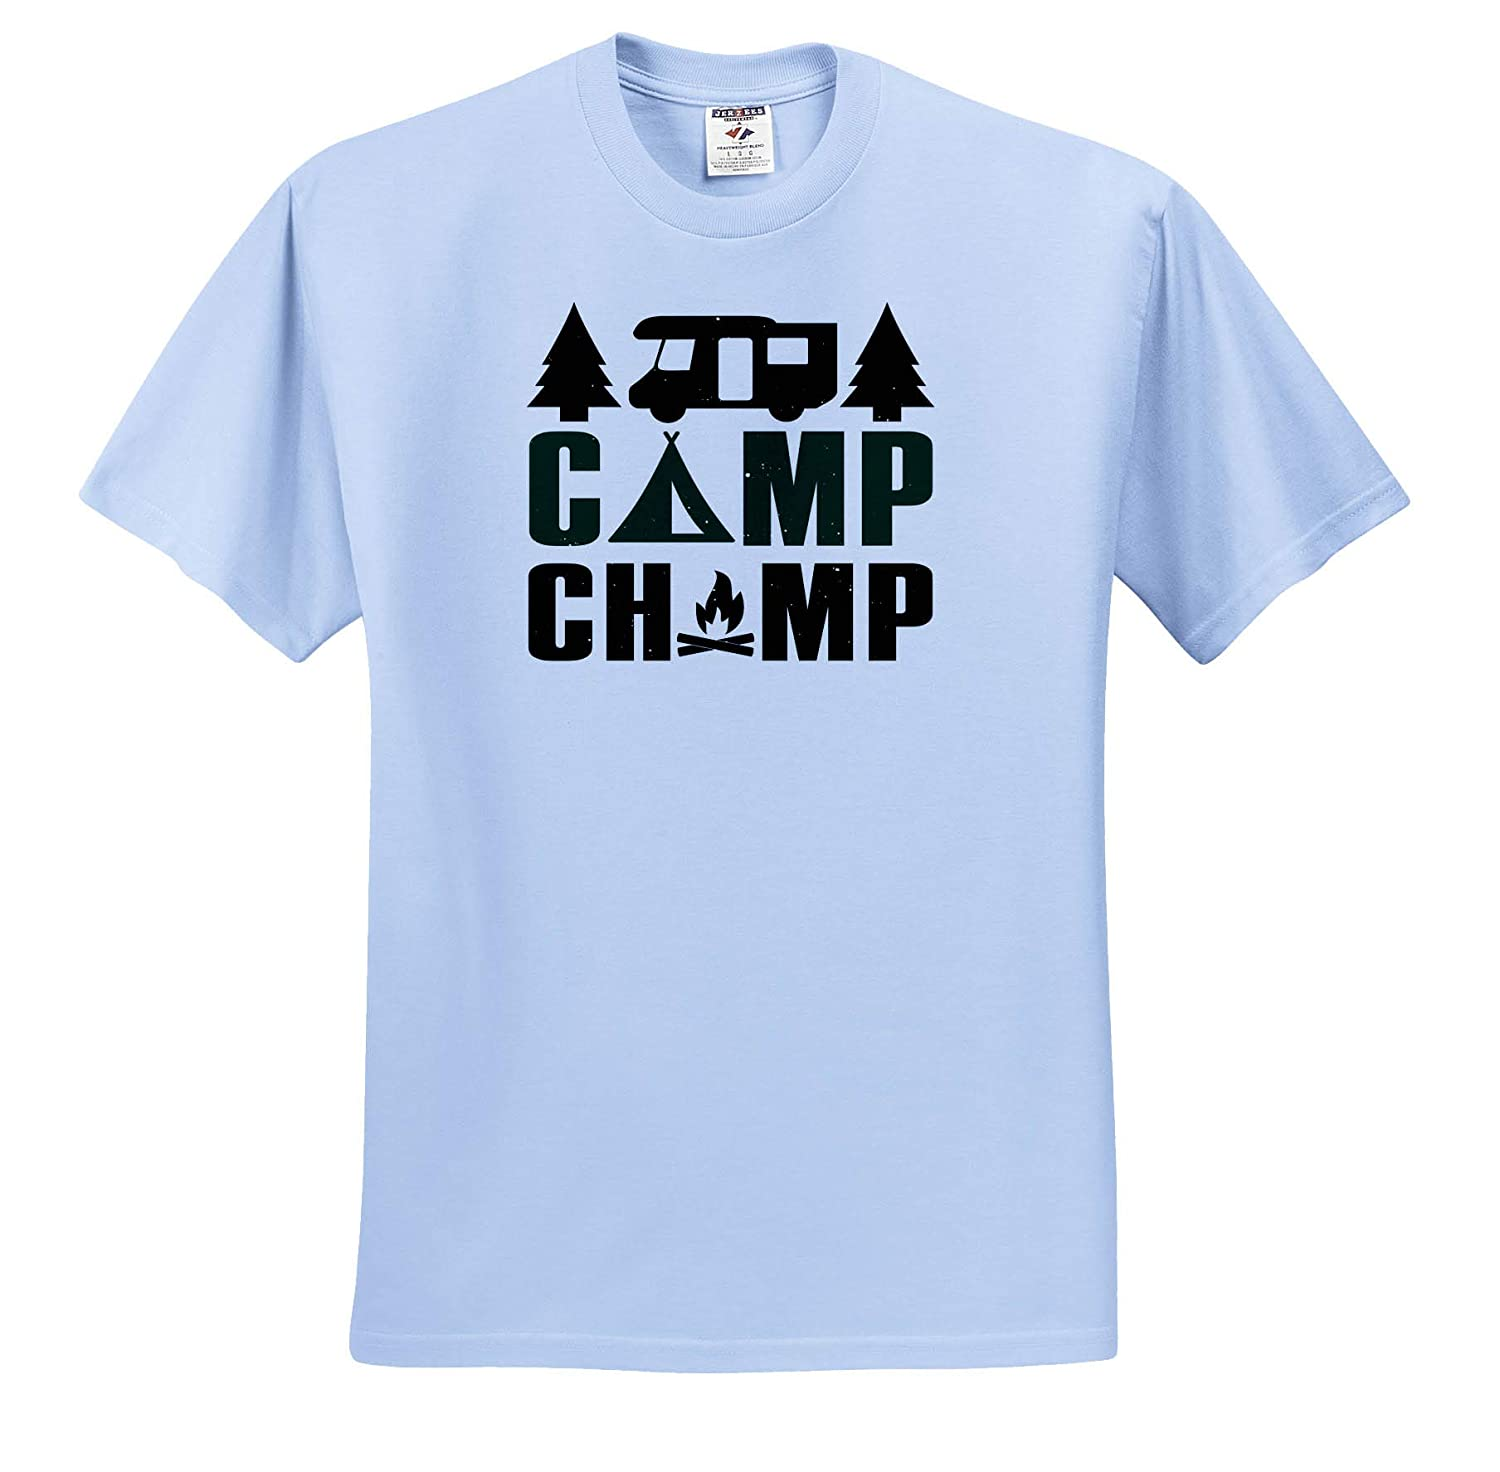 3dRose Anne Marie Baugh Camp Champ Quotes and Sayings ts/_319243 Adult T-Shirt XL